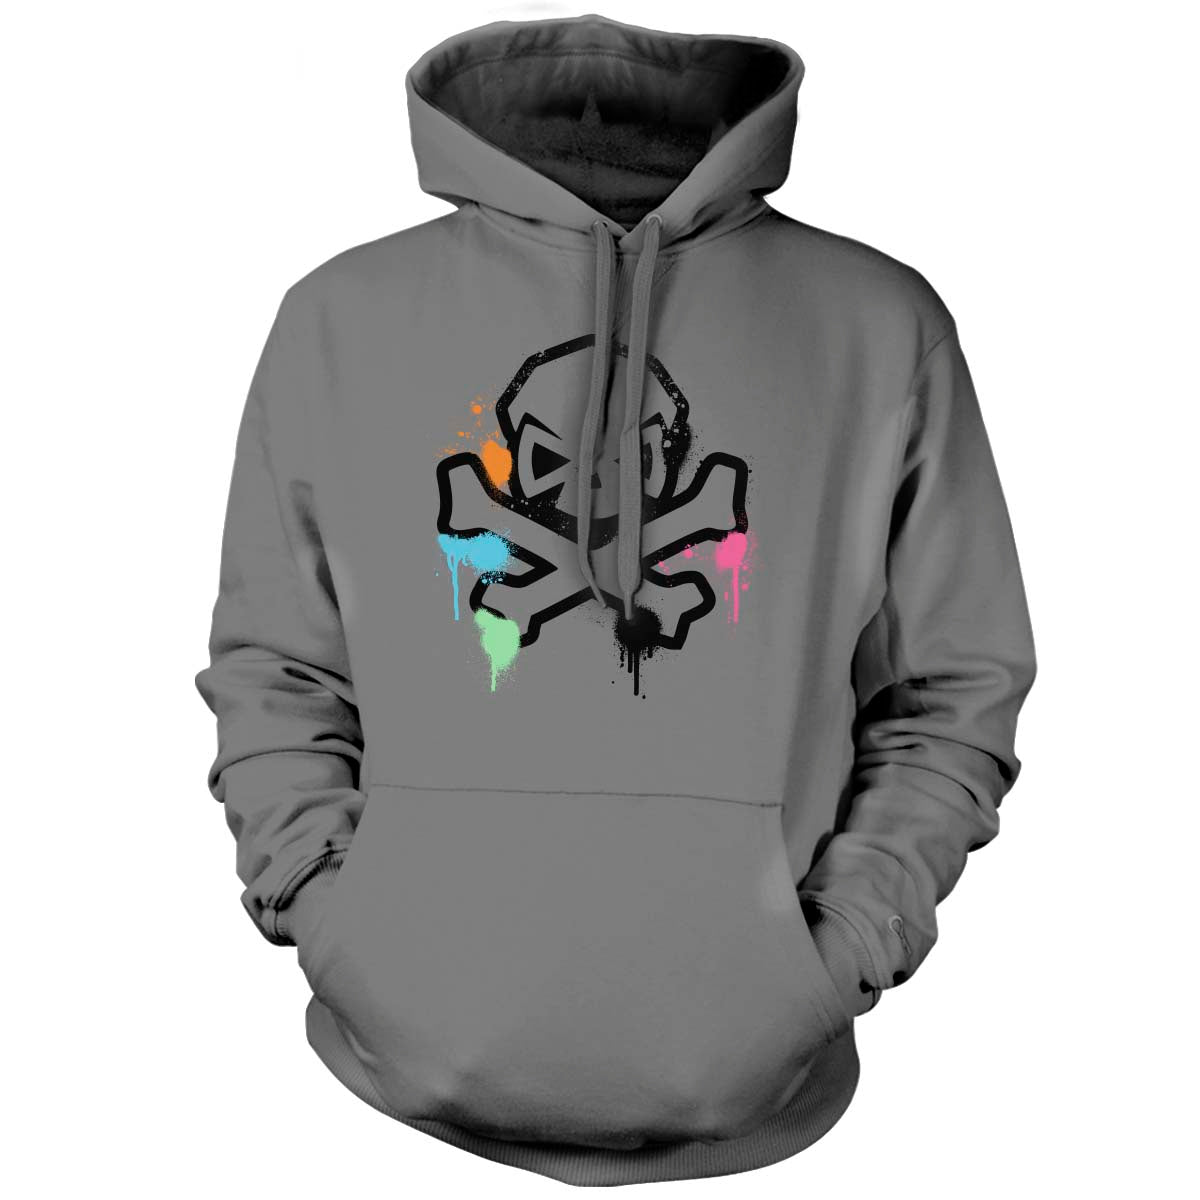 Spring Time Graffiti - Hoodie - Grey - T-Shirts - Pipe Hitters Union